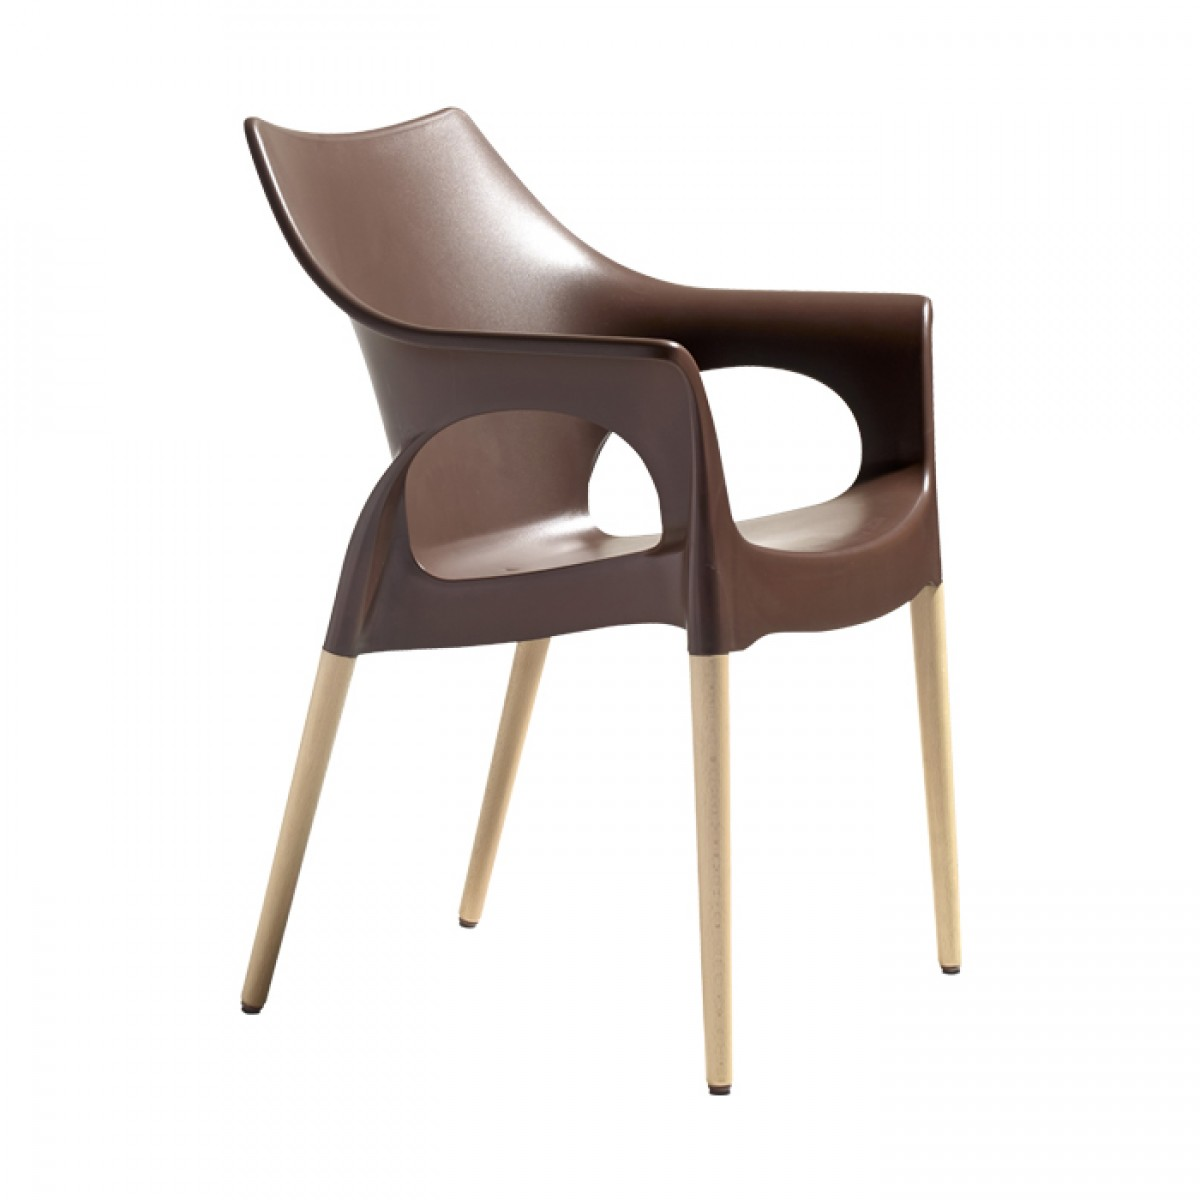 Natural beech legs. Polypropylene seat and backrest. Avaliable in linen, cocoa and anthracite finishes